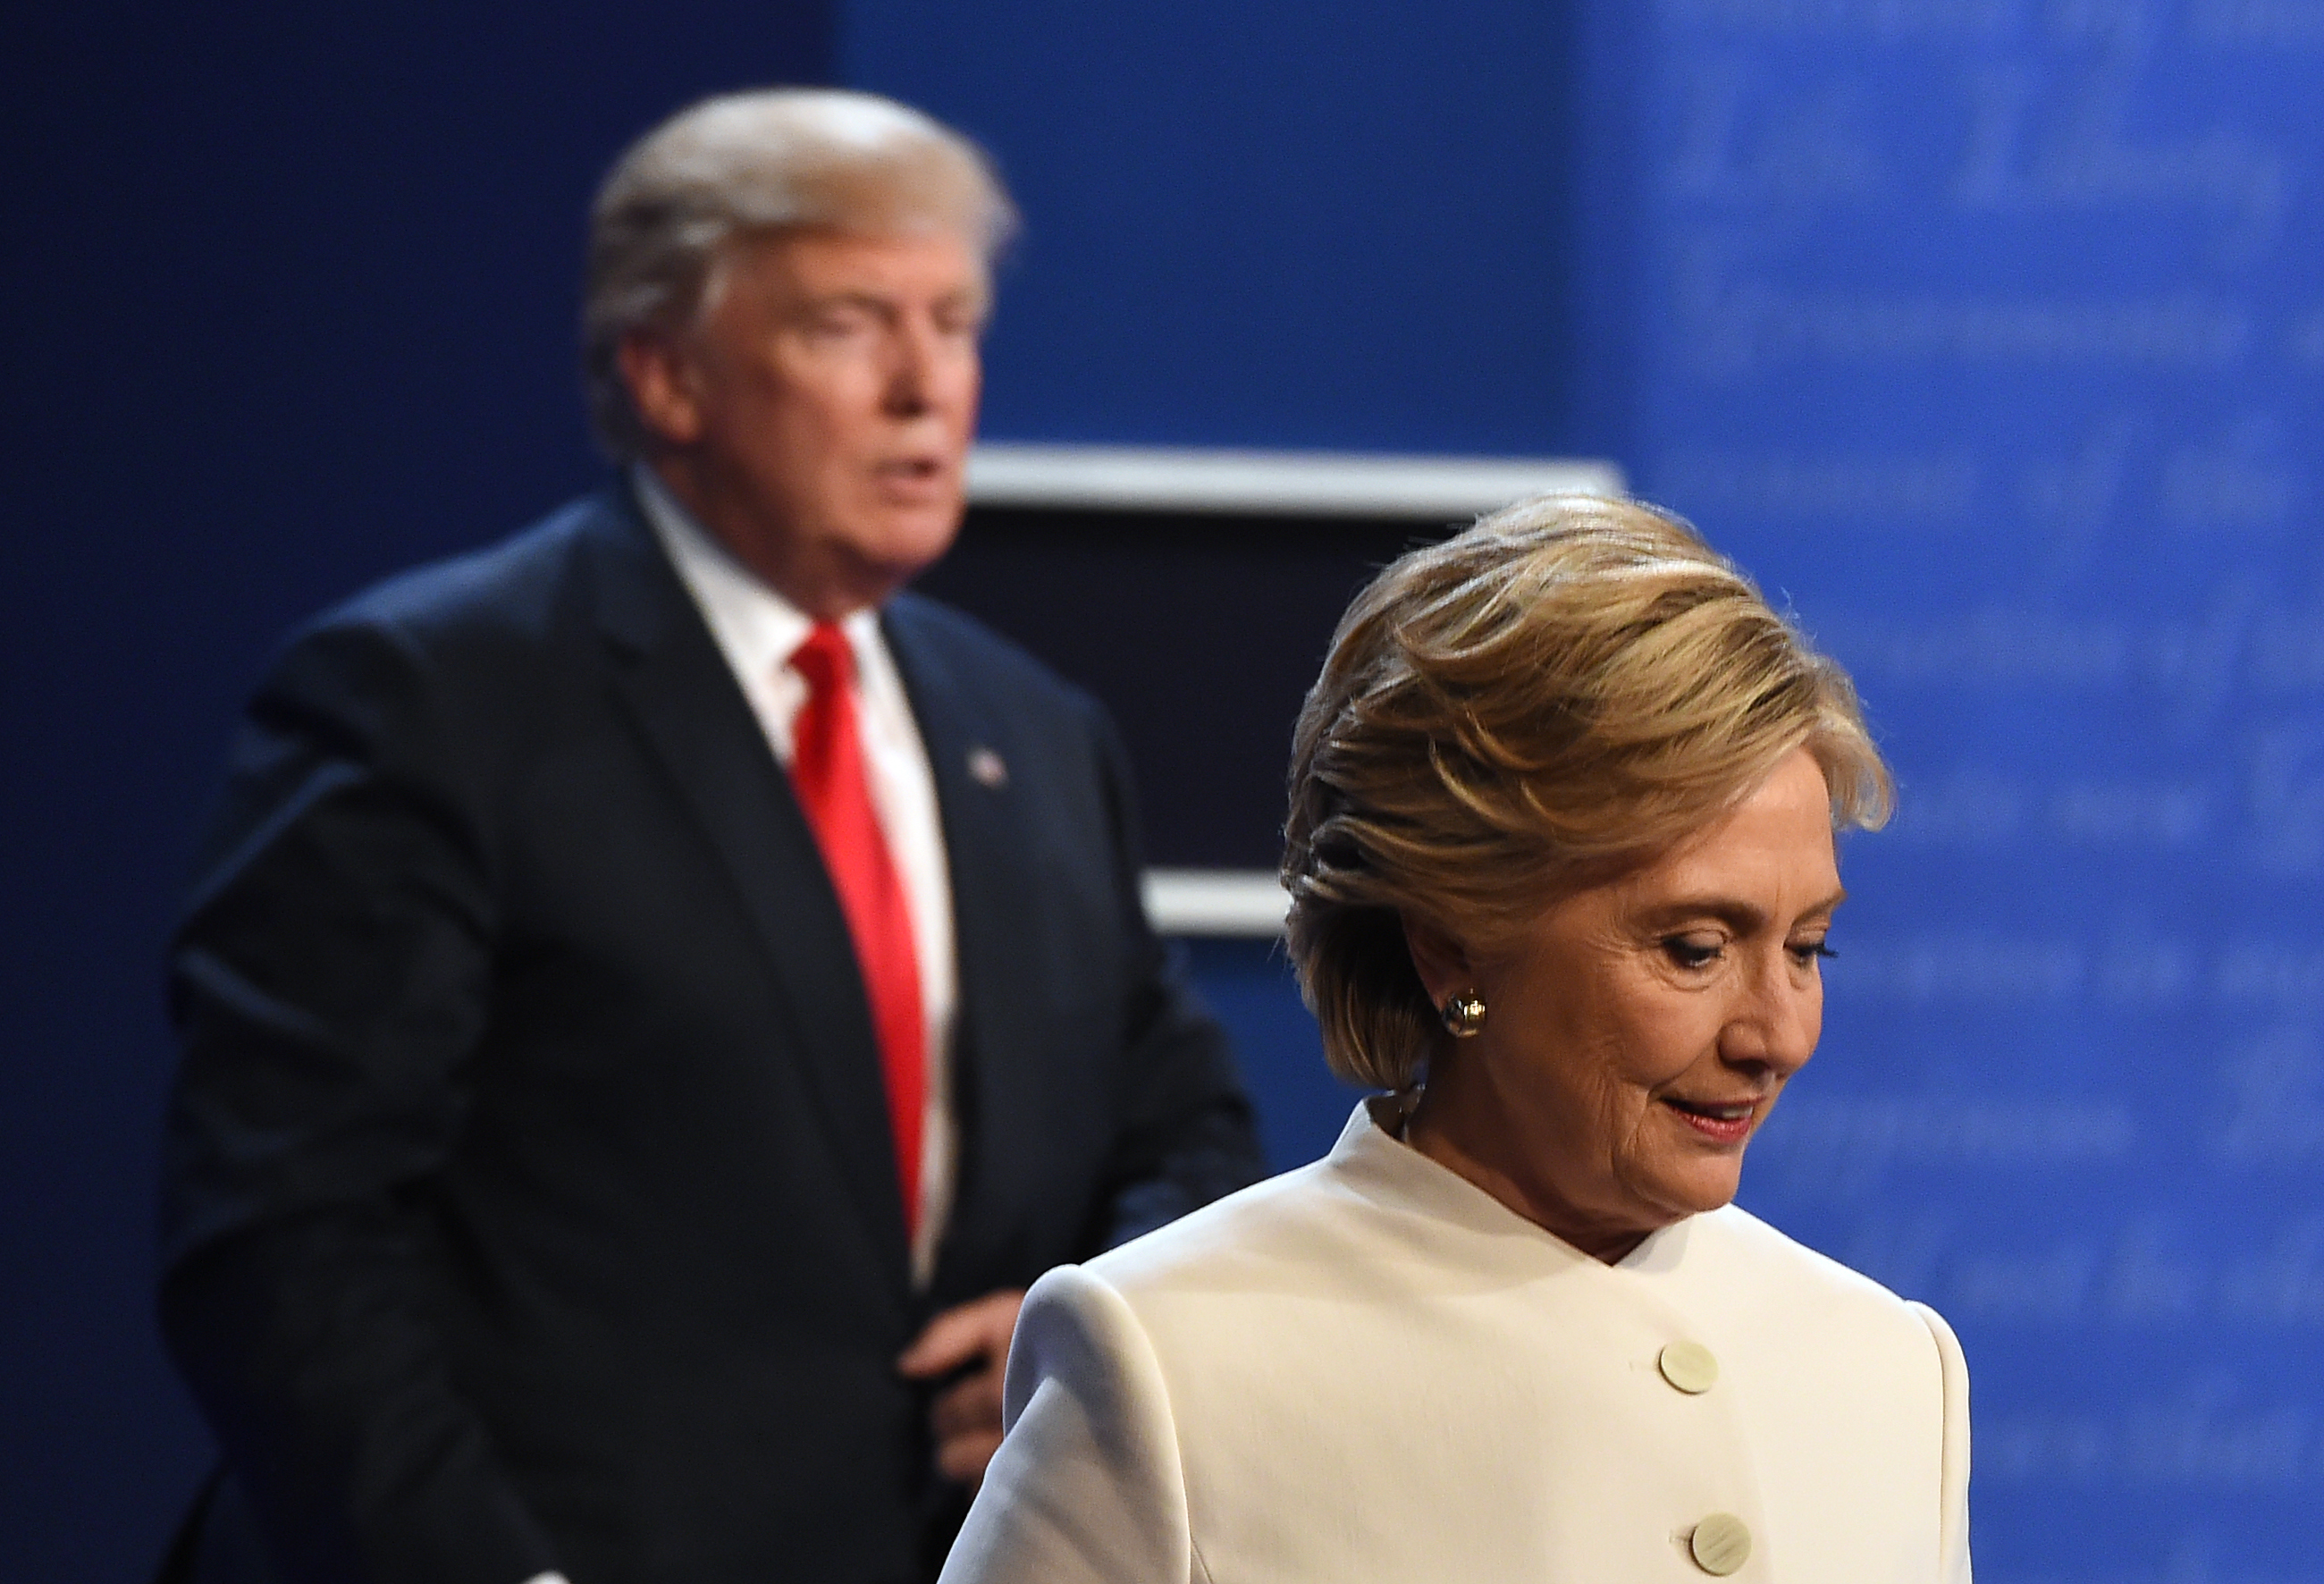 Hillary Clinton and Donald Trump walk off the stage after the final presidential debate at the Thomas & Mack Center on the campus of the University of Las Vegas in Las Vegas, Nevada on October 19, 2016.